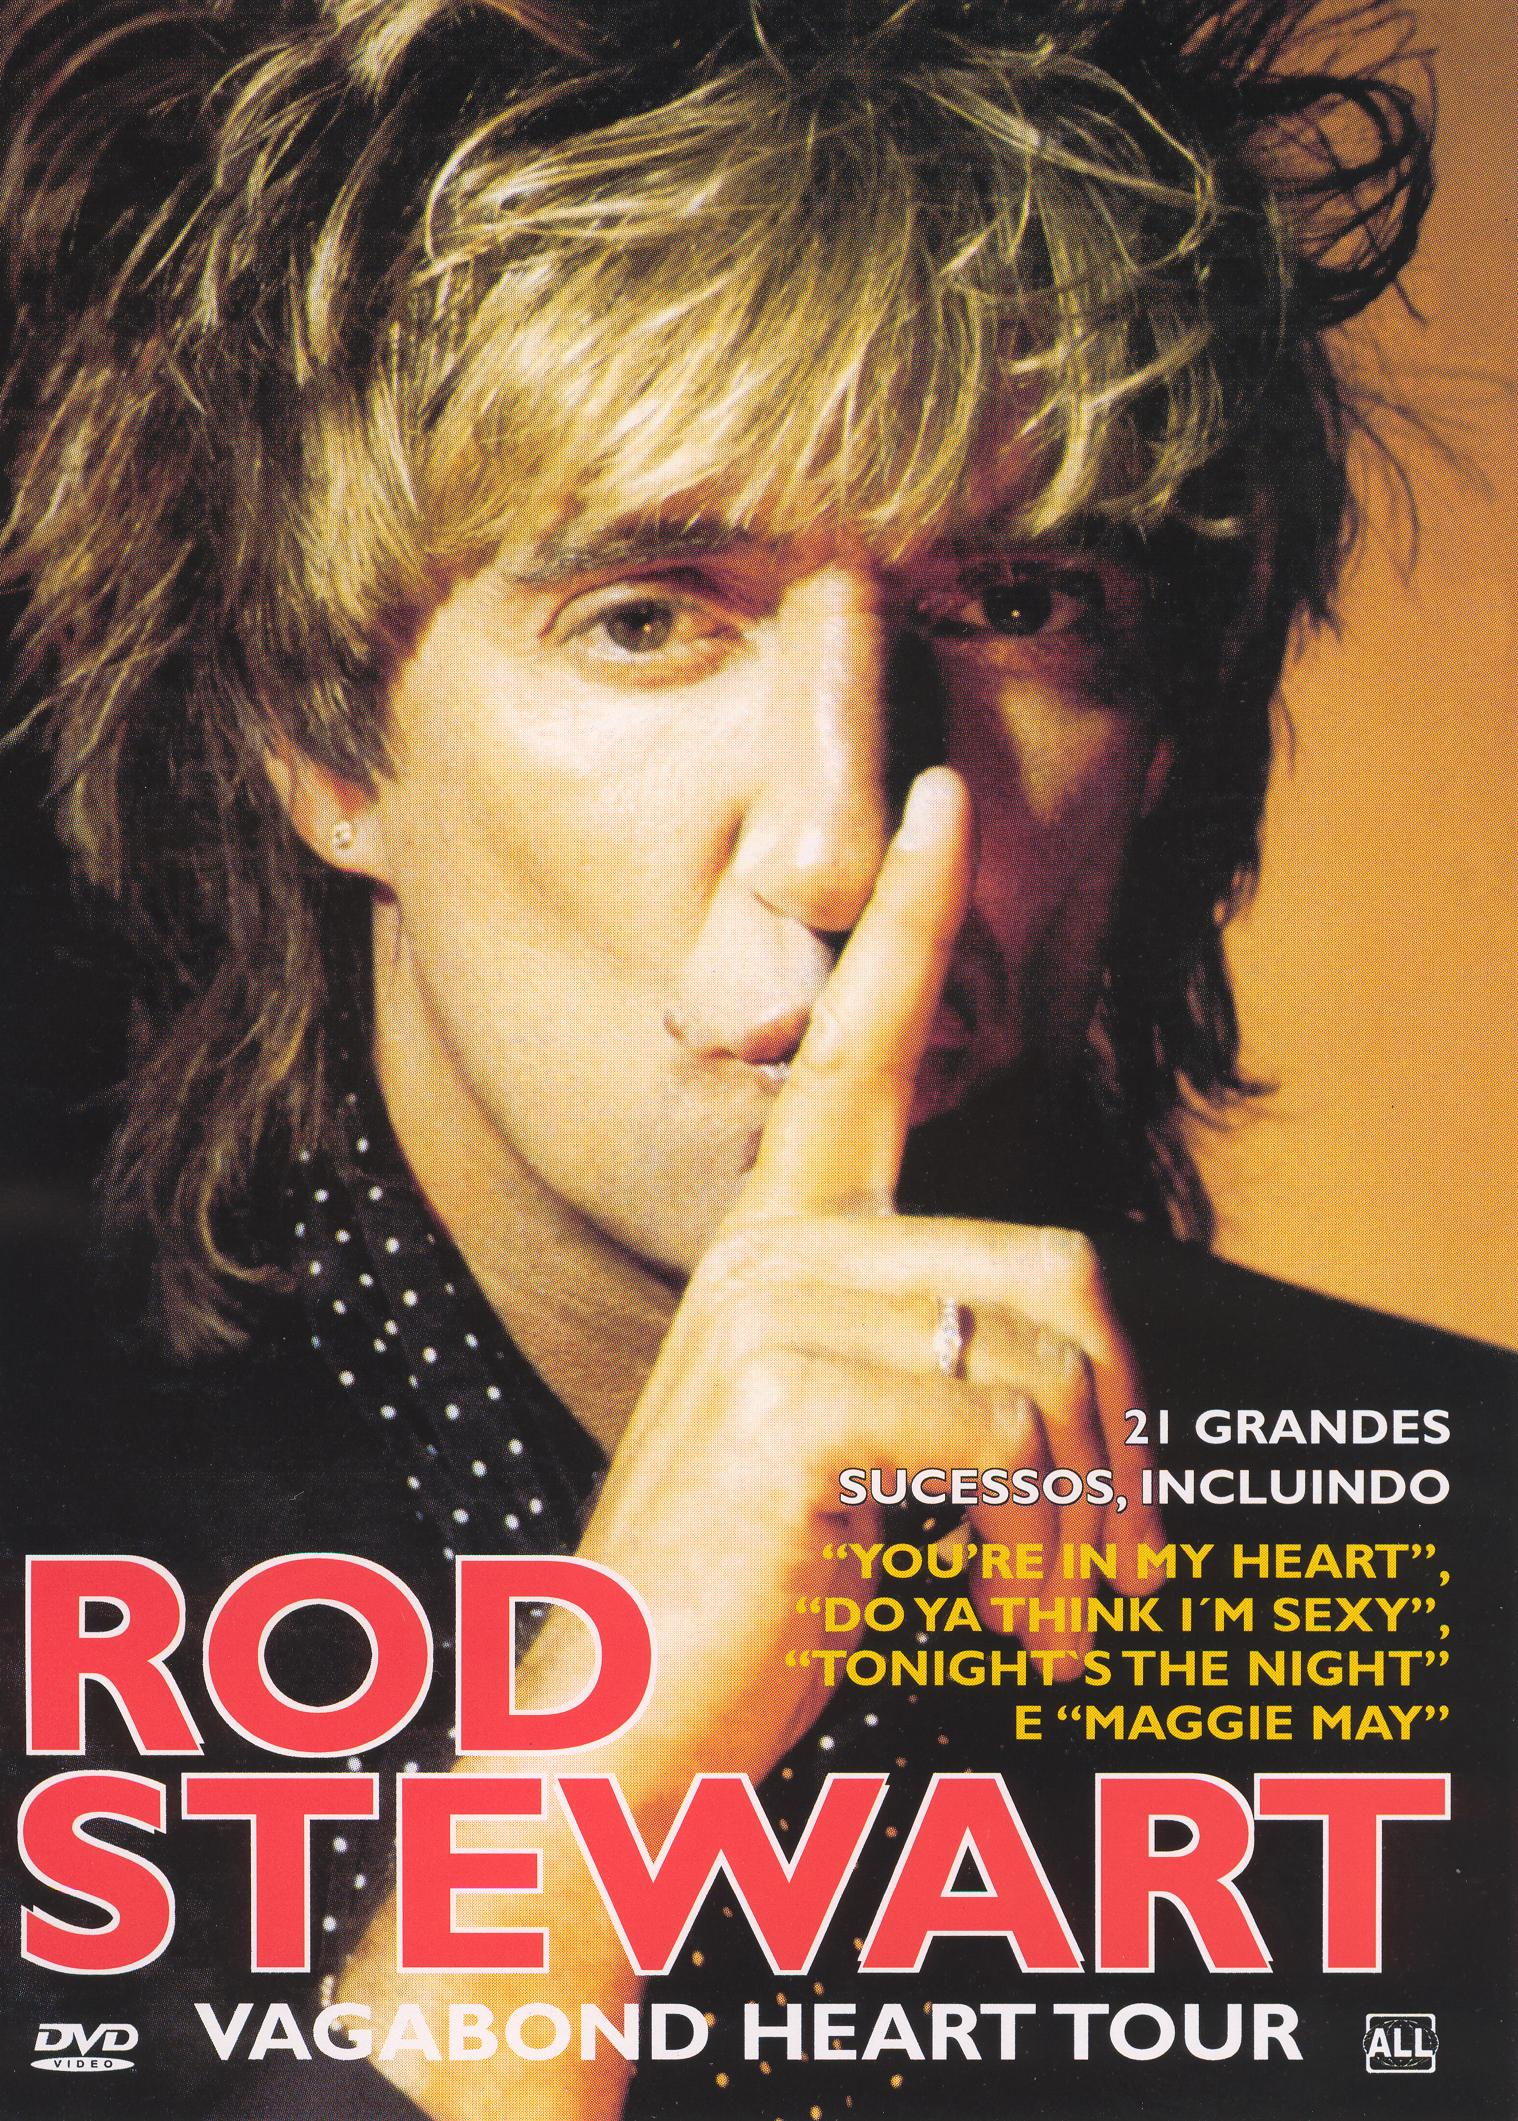 Rod Stewart: Vagabond Heart Tour